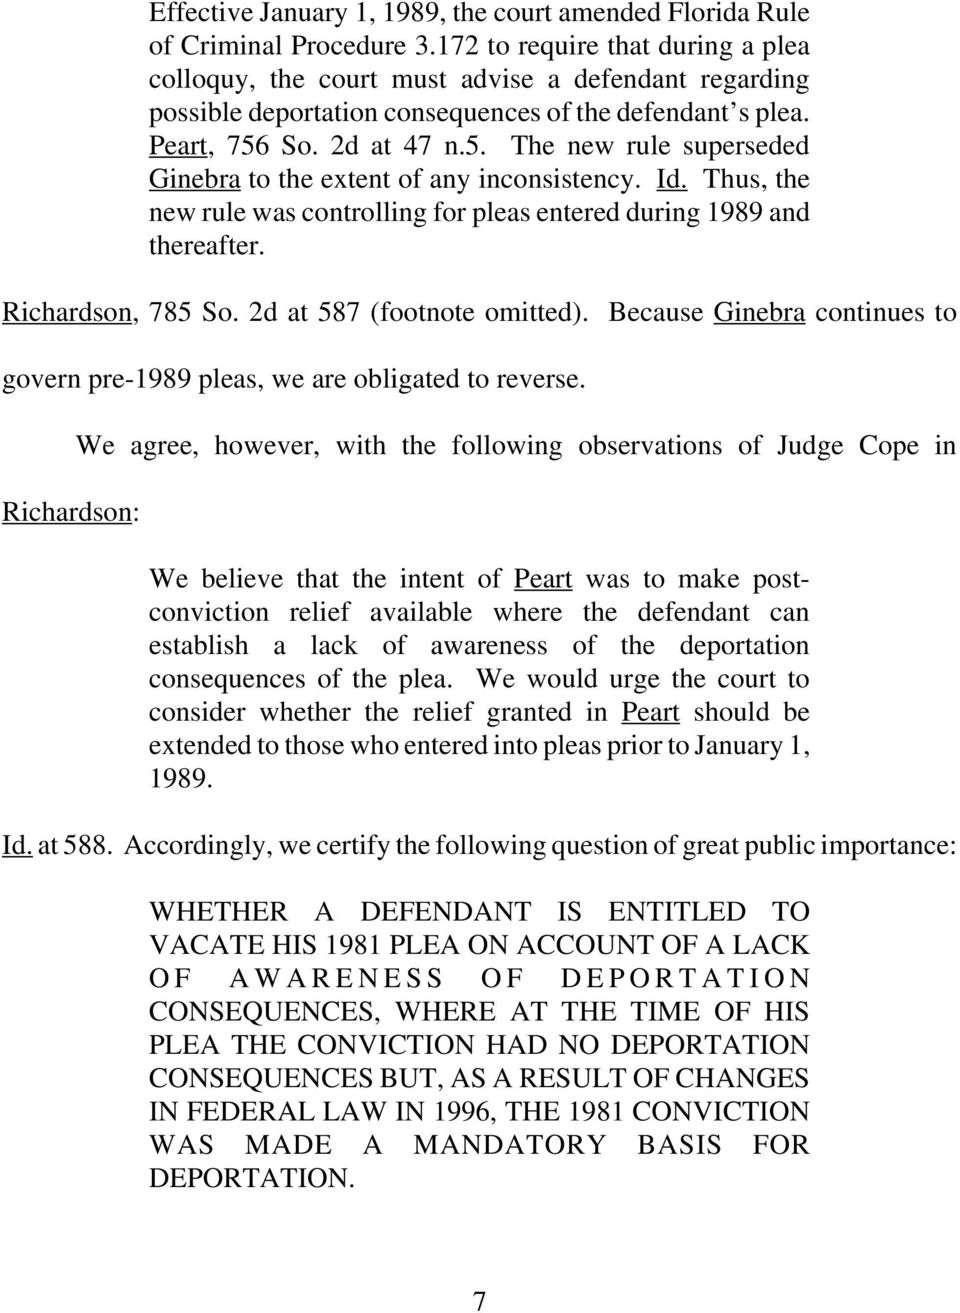 So. 2d at 47 n.5. The new rule superseded Ginebra to the extent of any inconsistency. Id. Thus, the new rule was controlling for pleas entered during 1989 and thereafter. Richardson, 785 So.